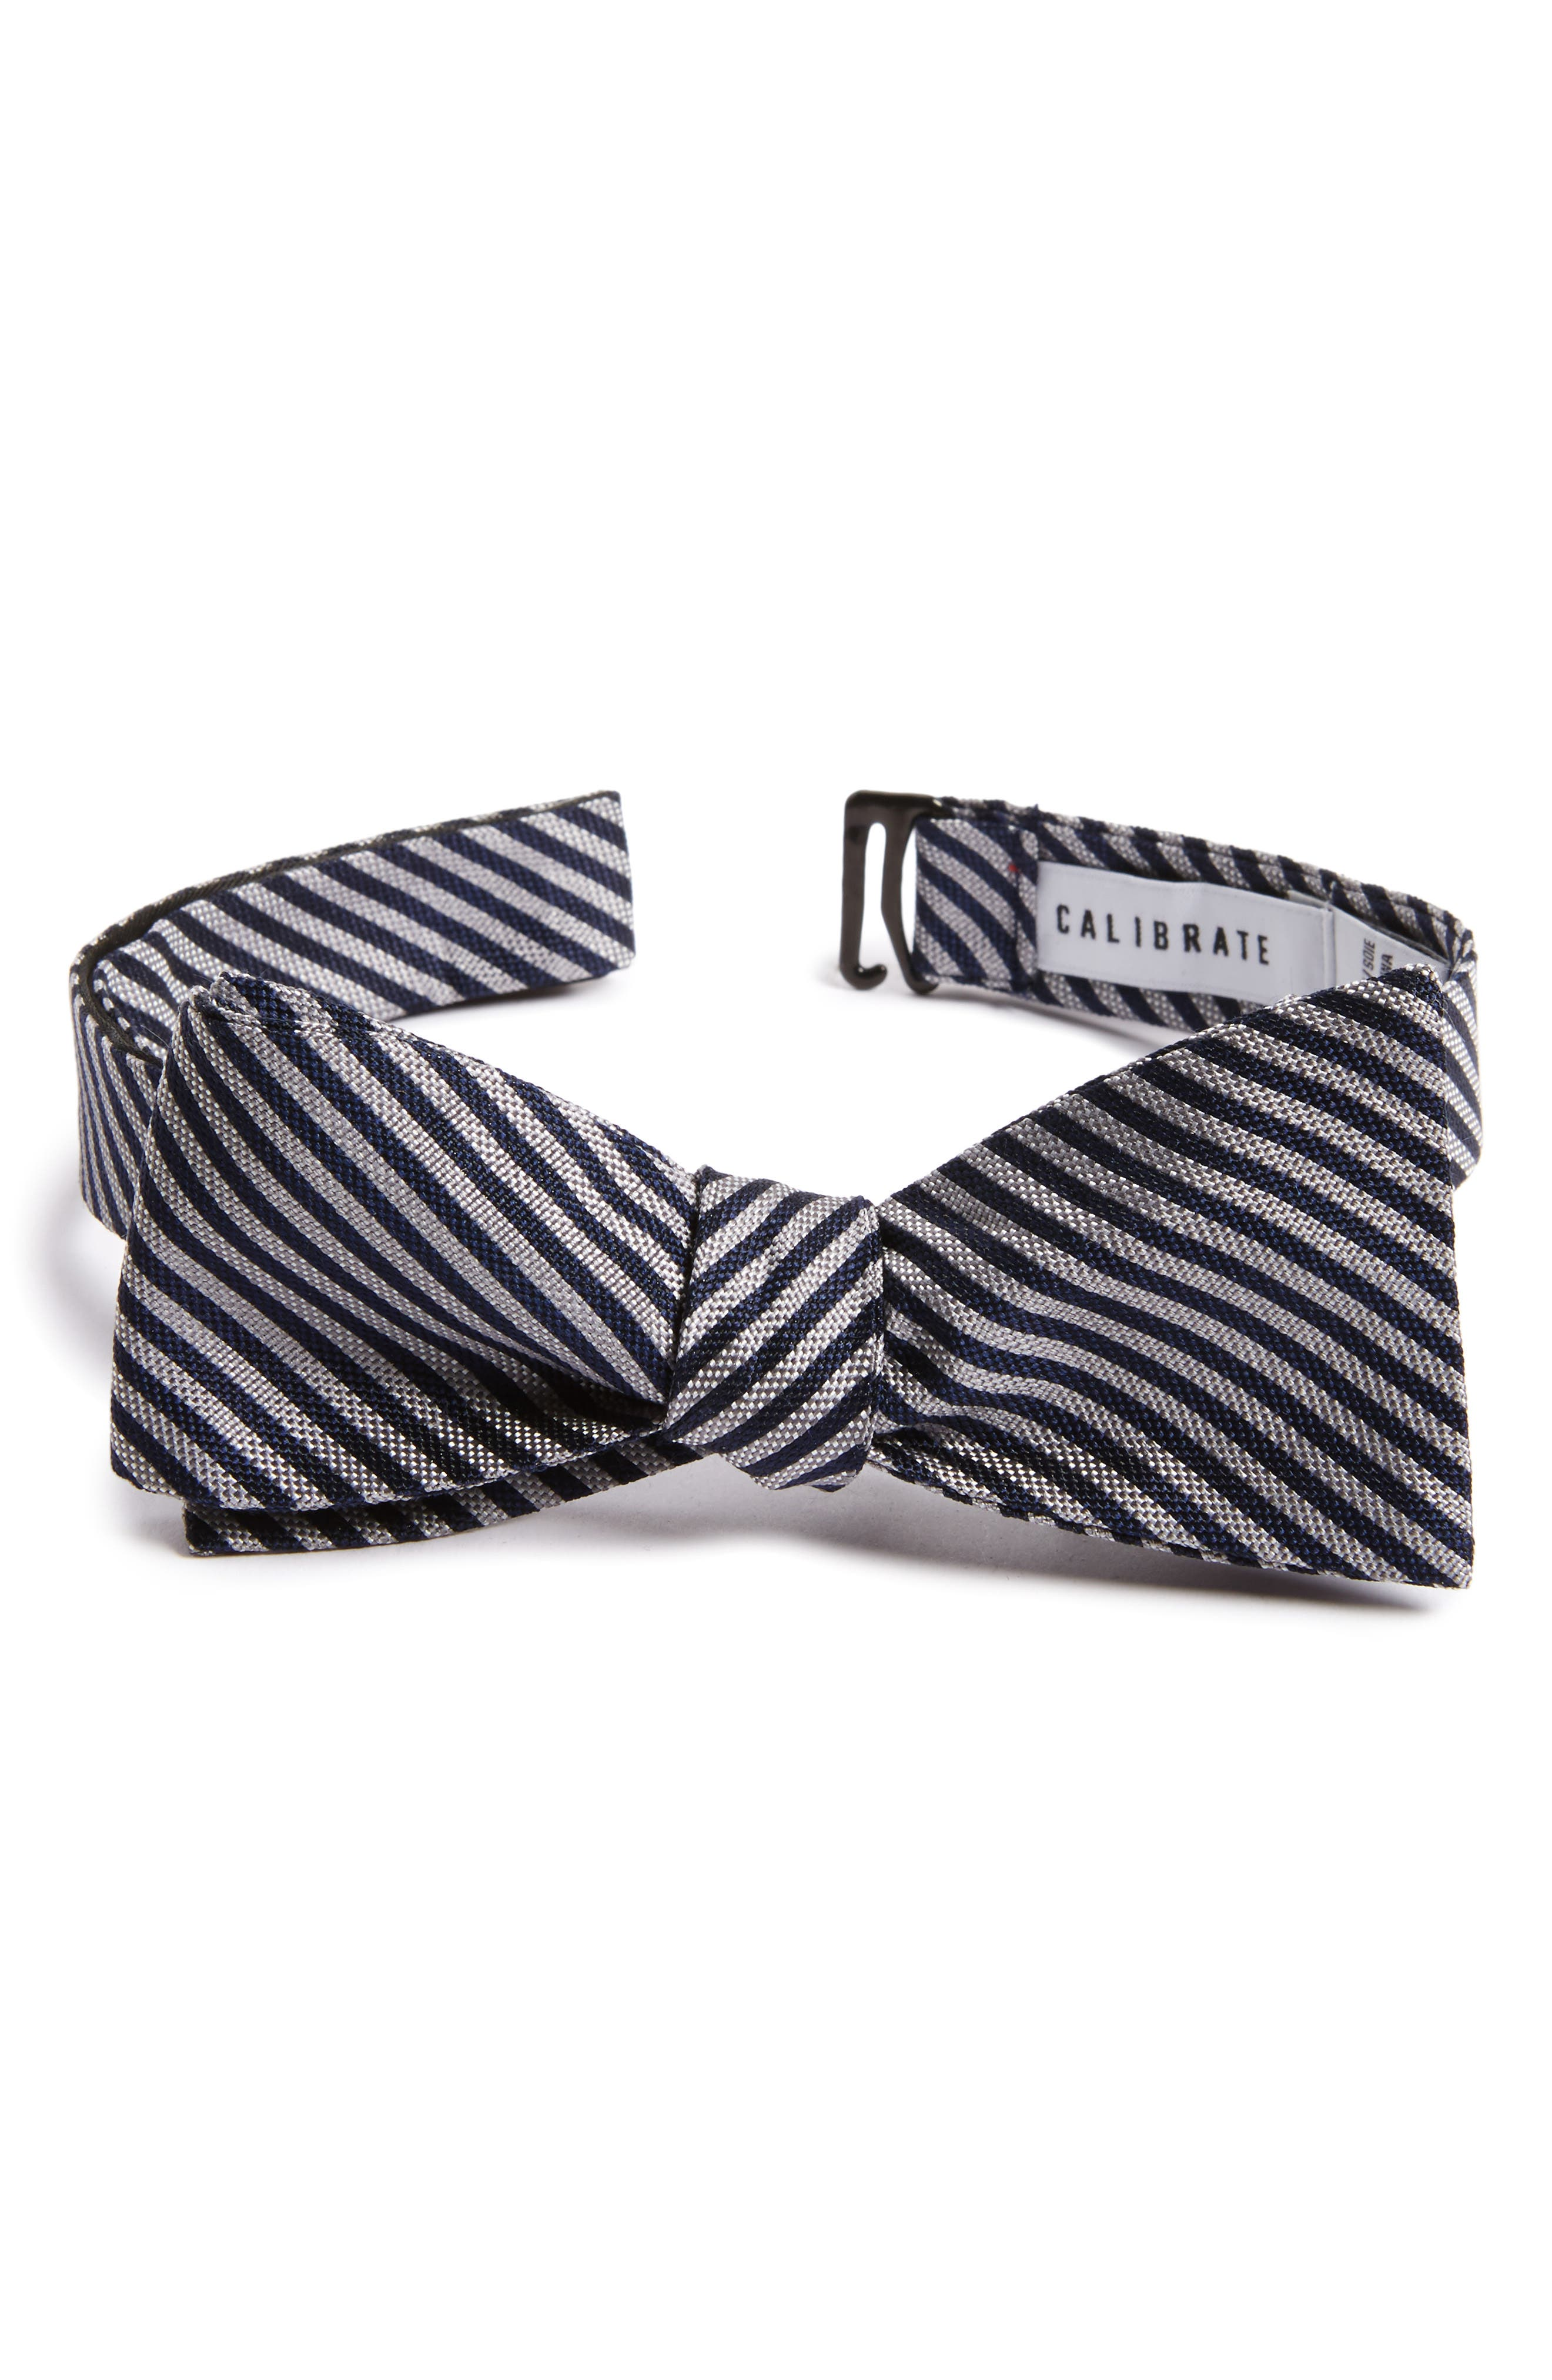 CALIBRATE Micro Oxford Stripe Silk Bow Tie